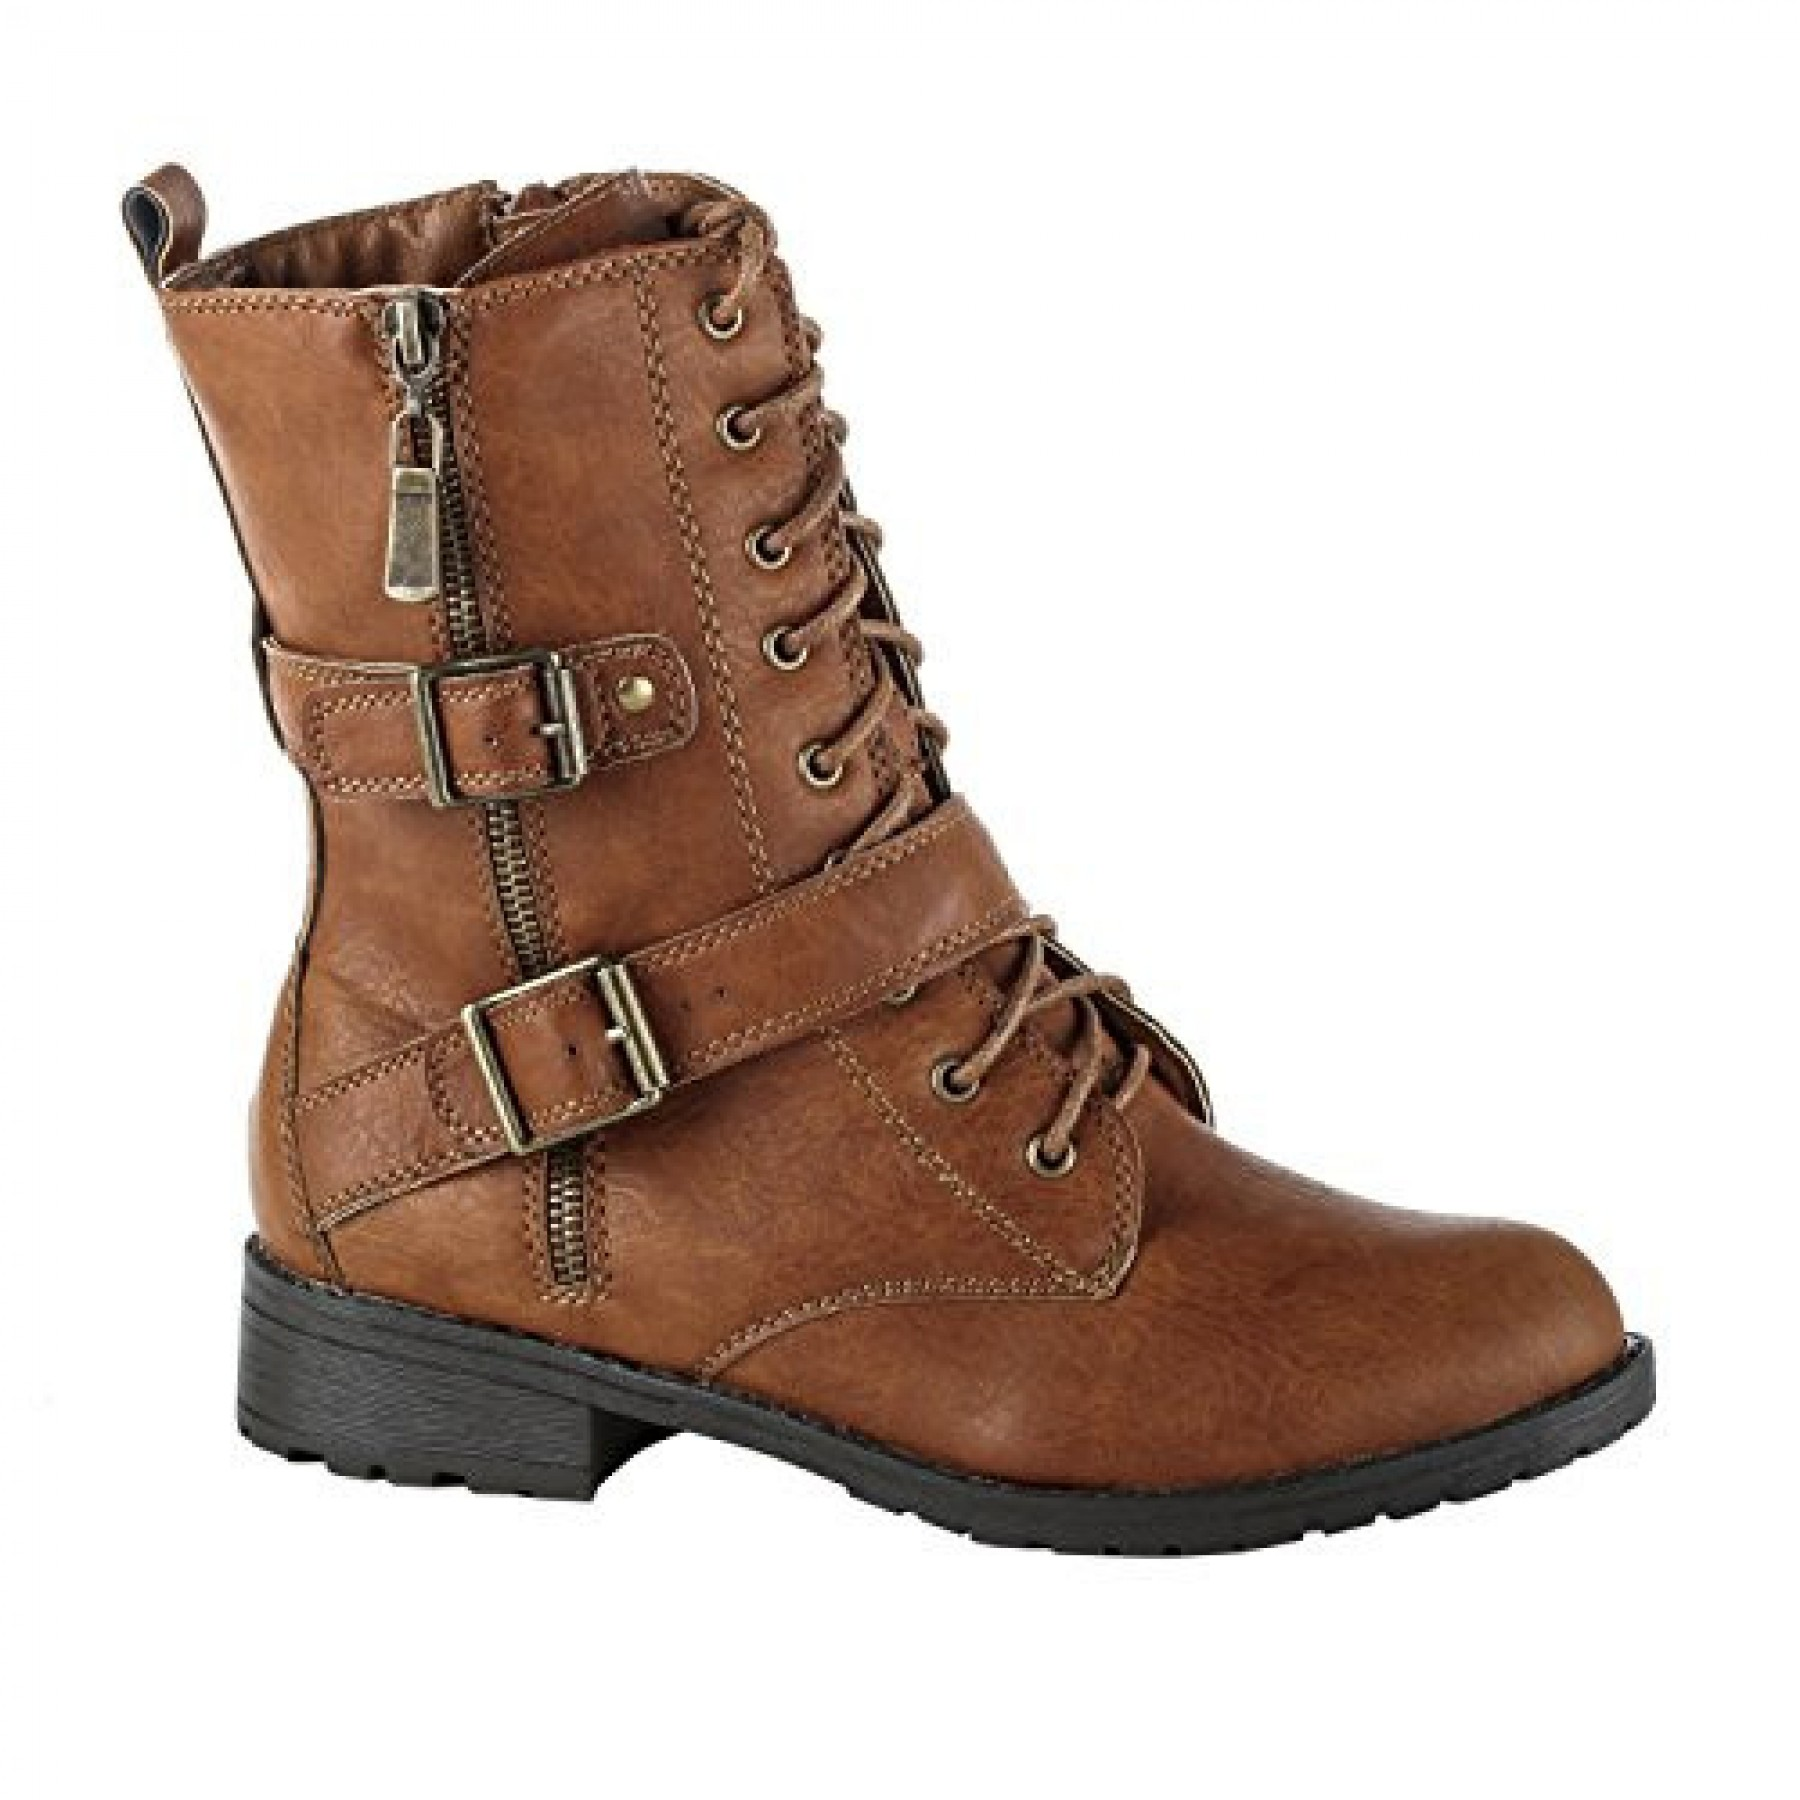 Women's Cognac Schella Manmade Buckled Combat Boot with Striking Side Zipper